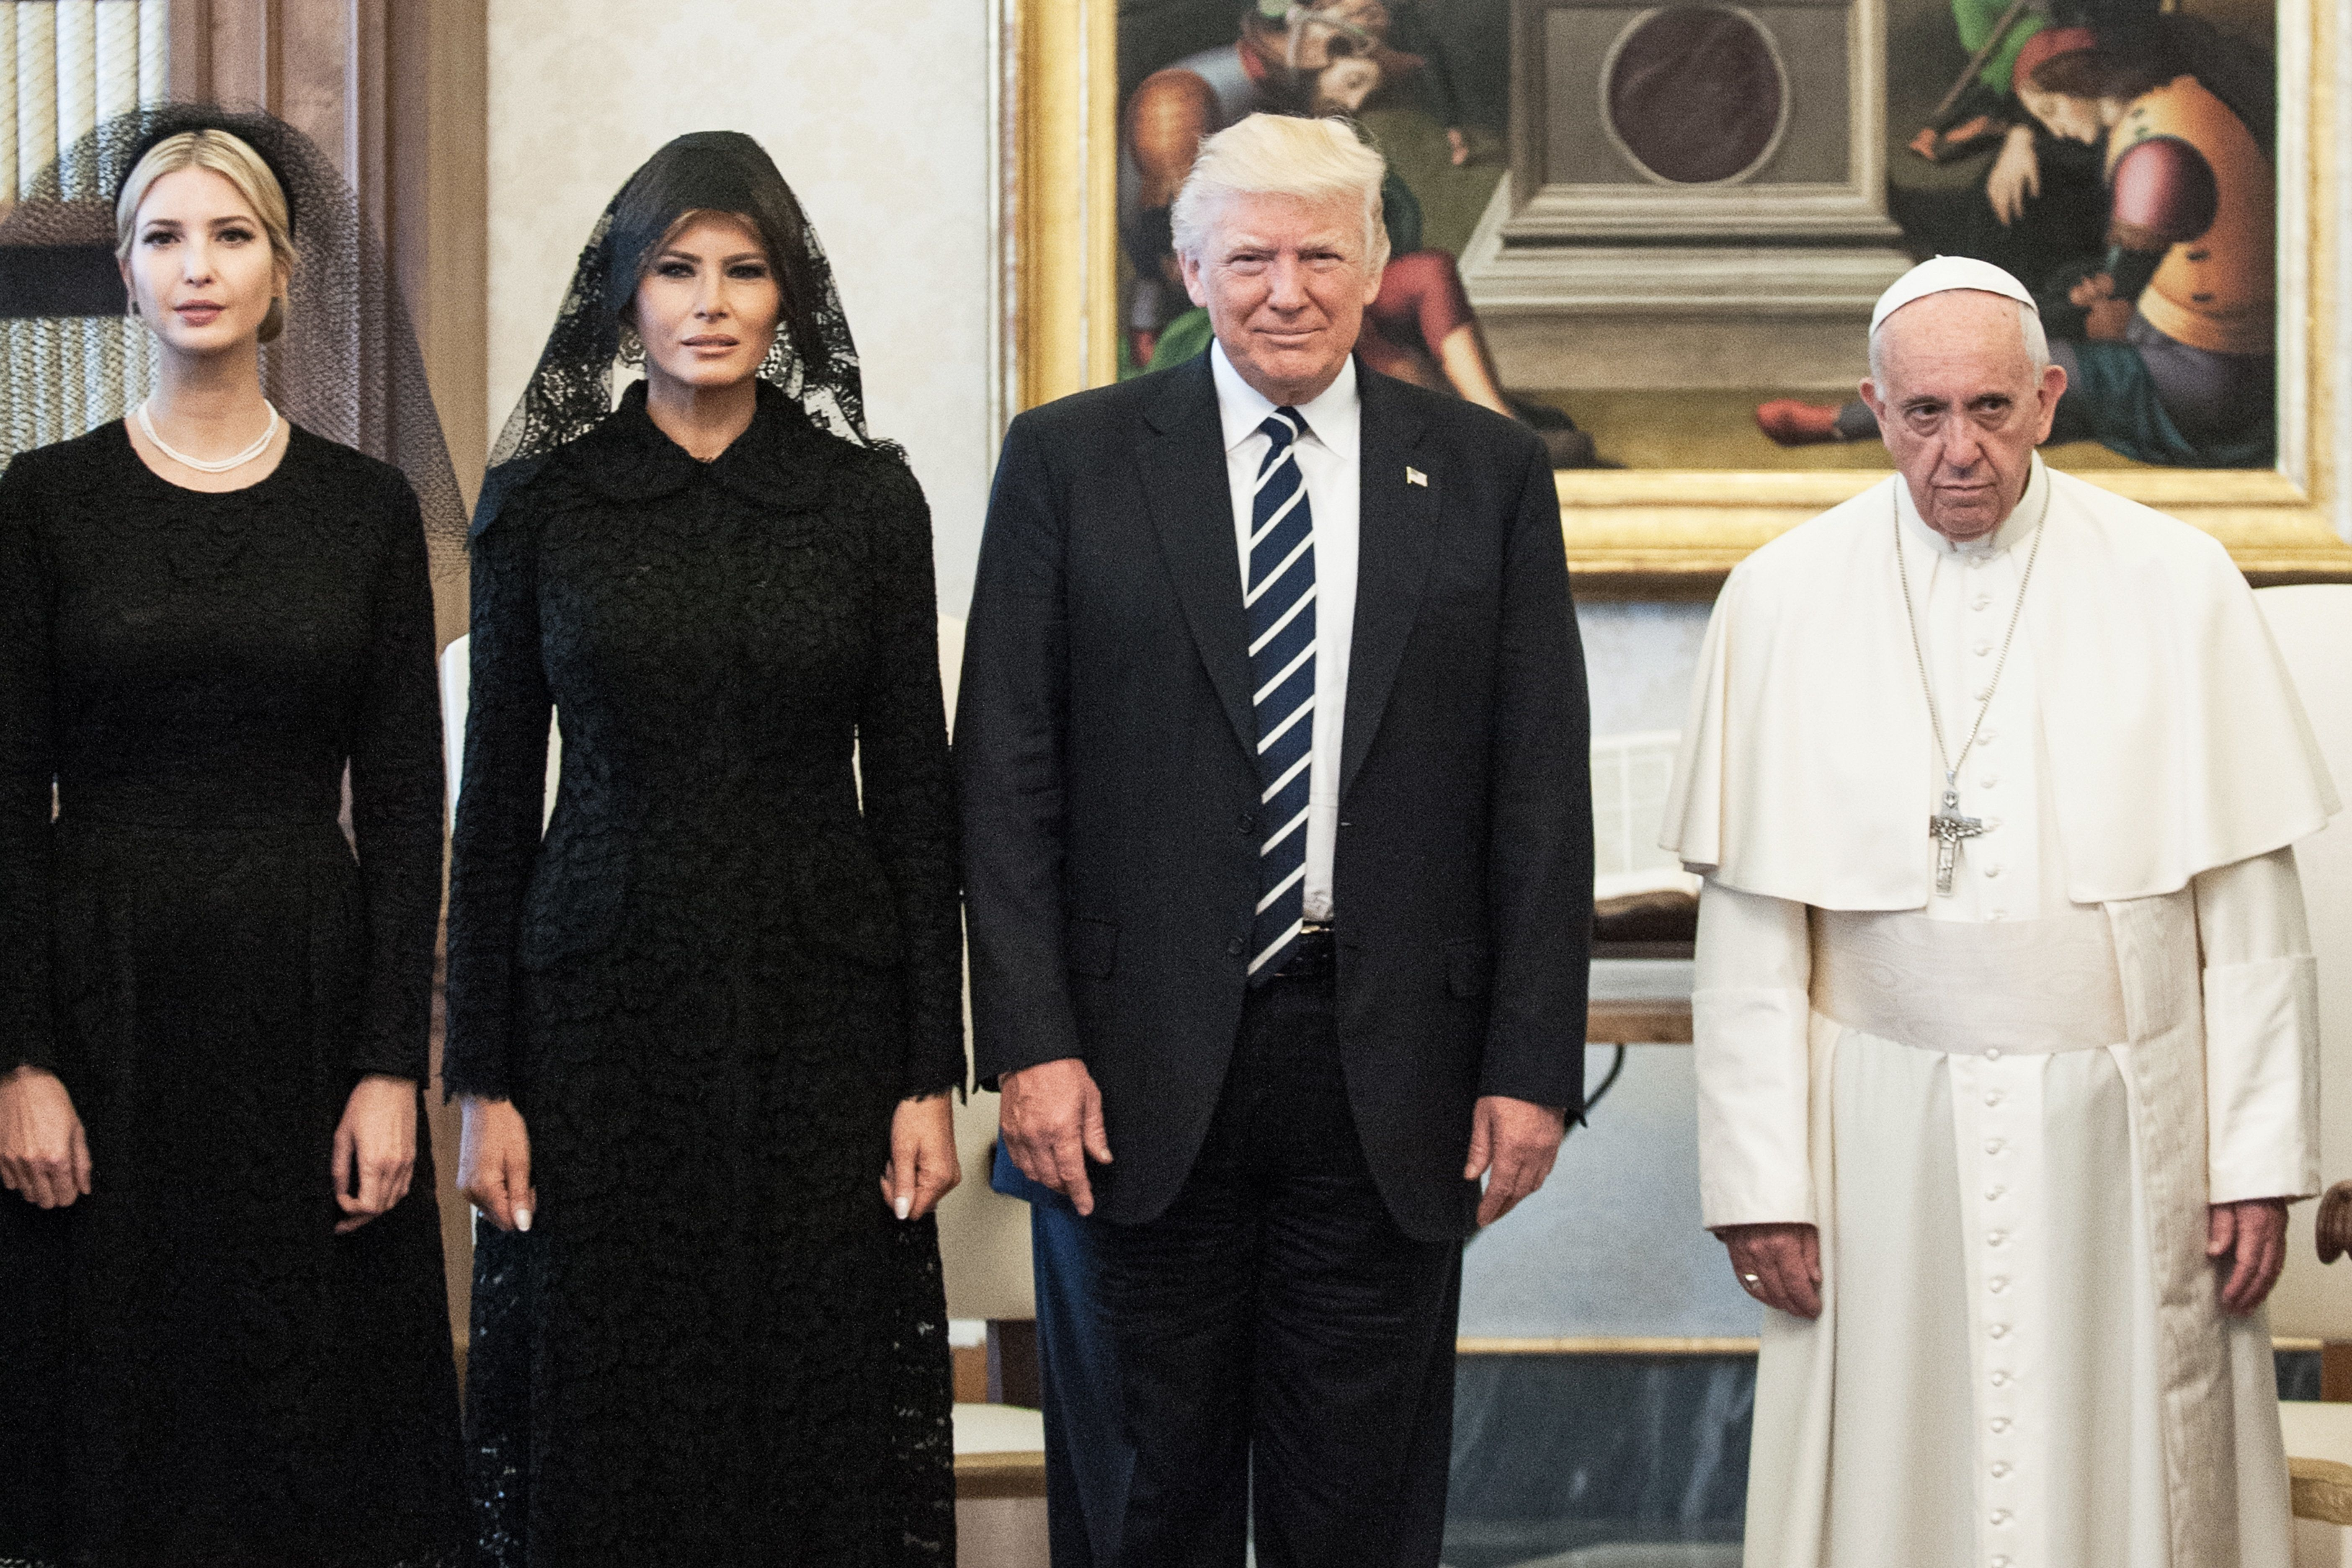 The Funniest Moment From Trump's Pope Visit You Didn't